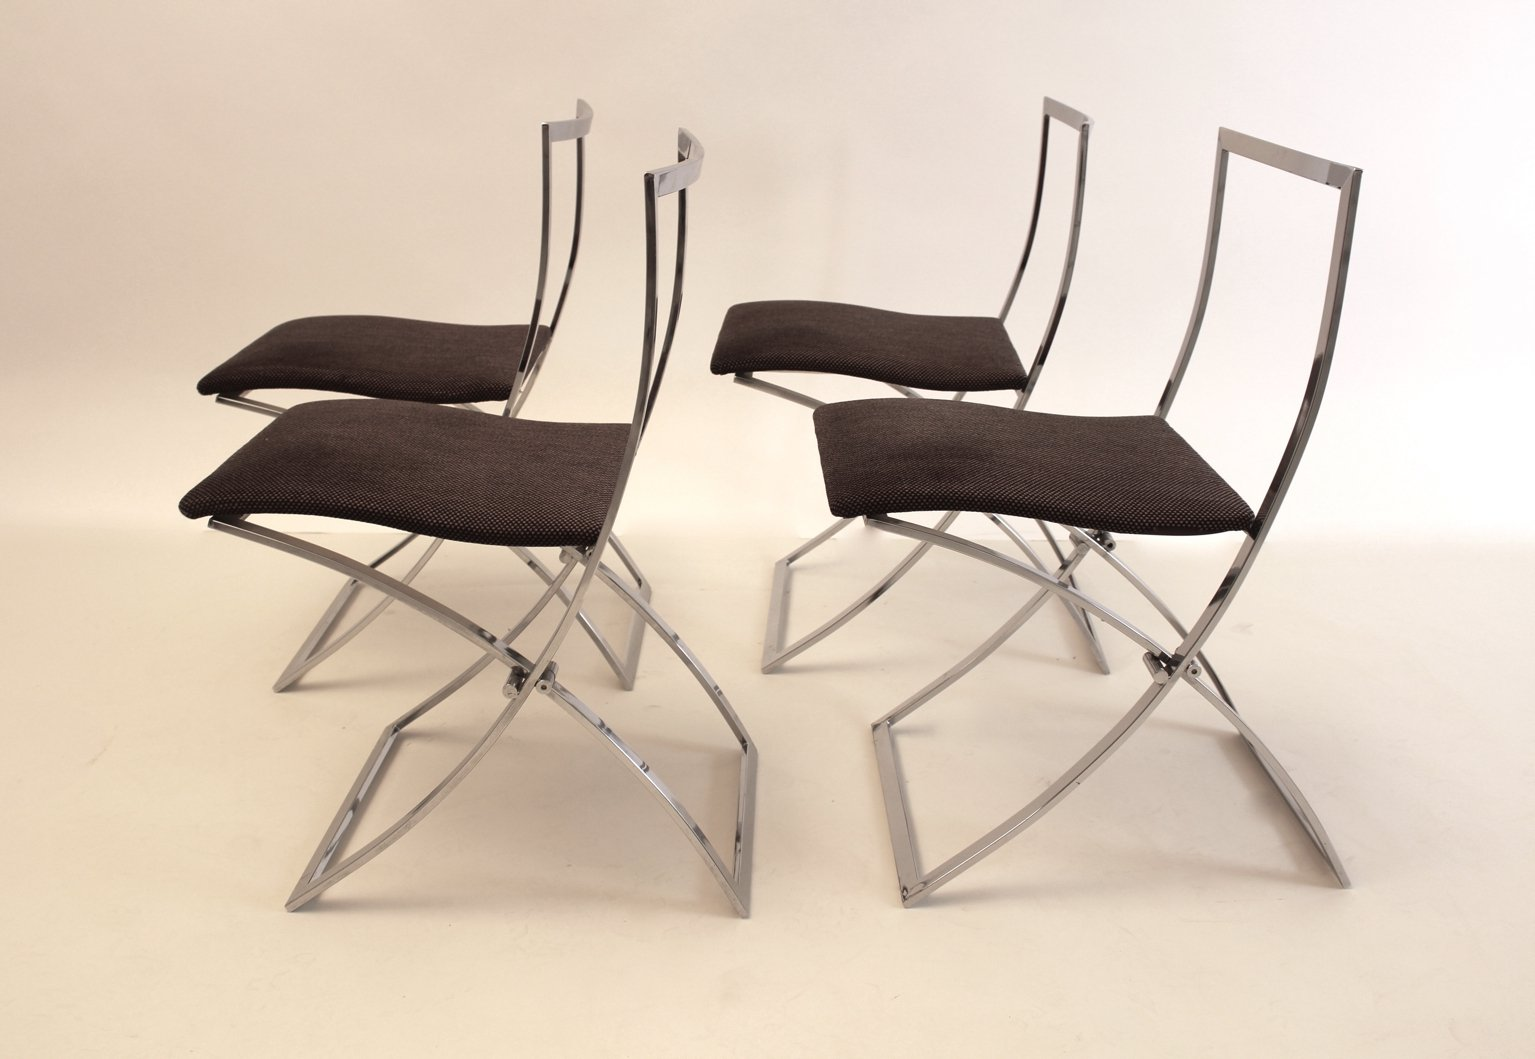 Foldable Dining Chairs Foldable Luisa Dining Chairs By Marcello Cuneo For Mobel 1970s Set Of 4